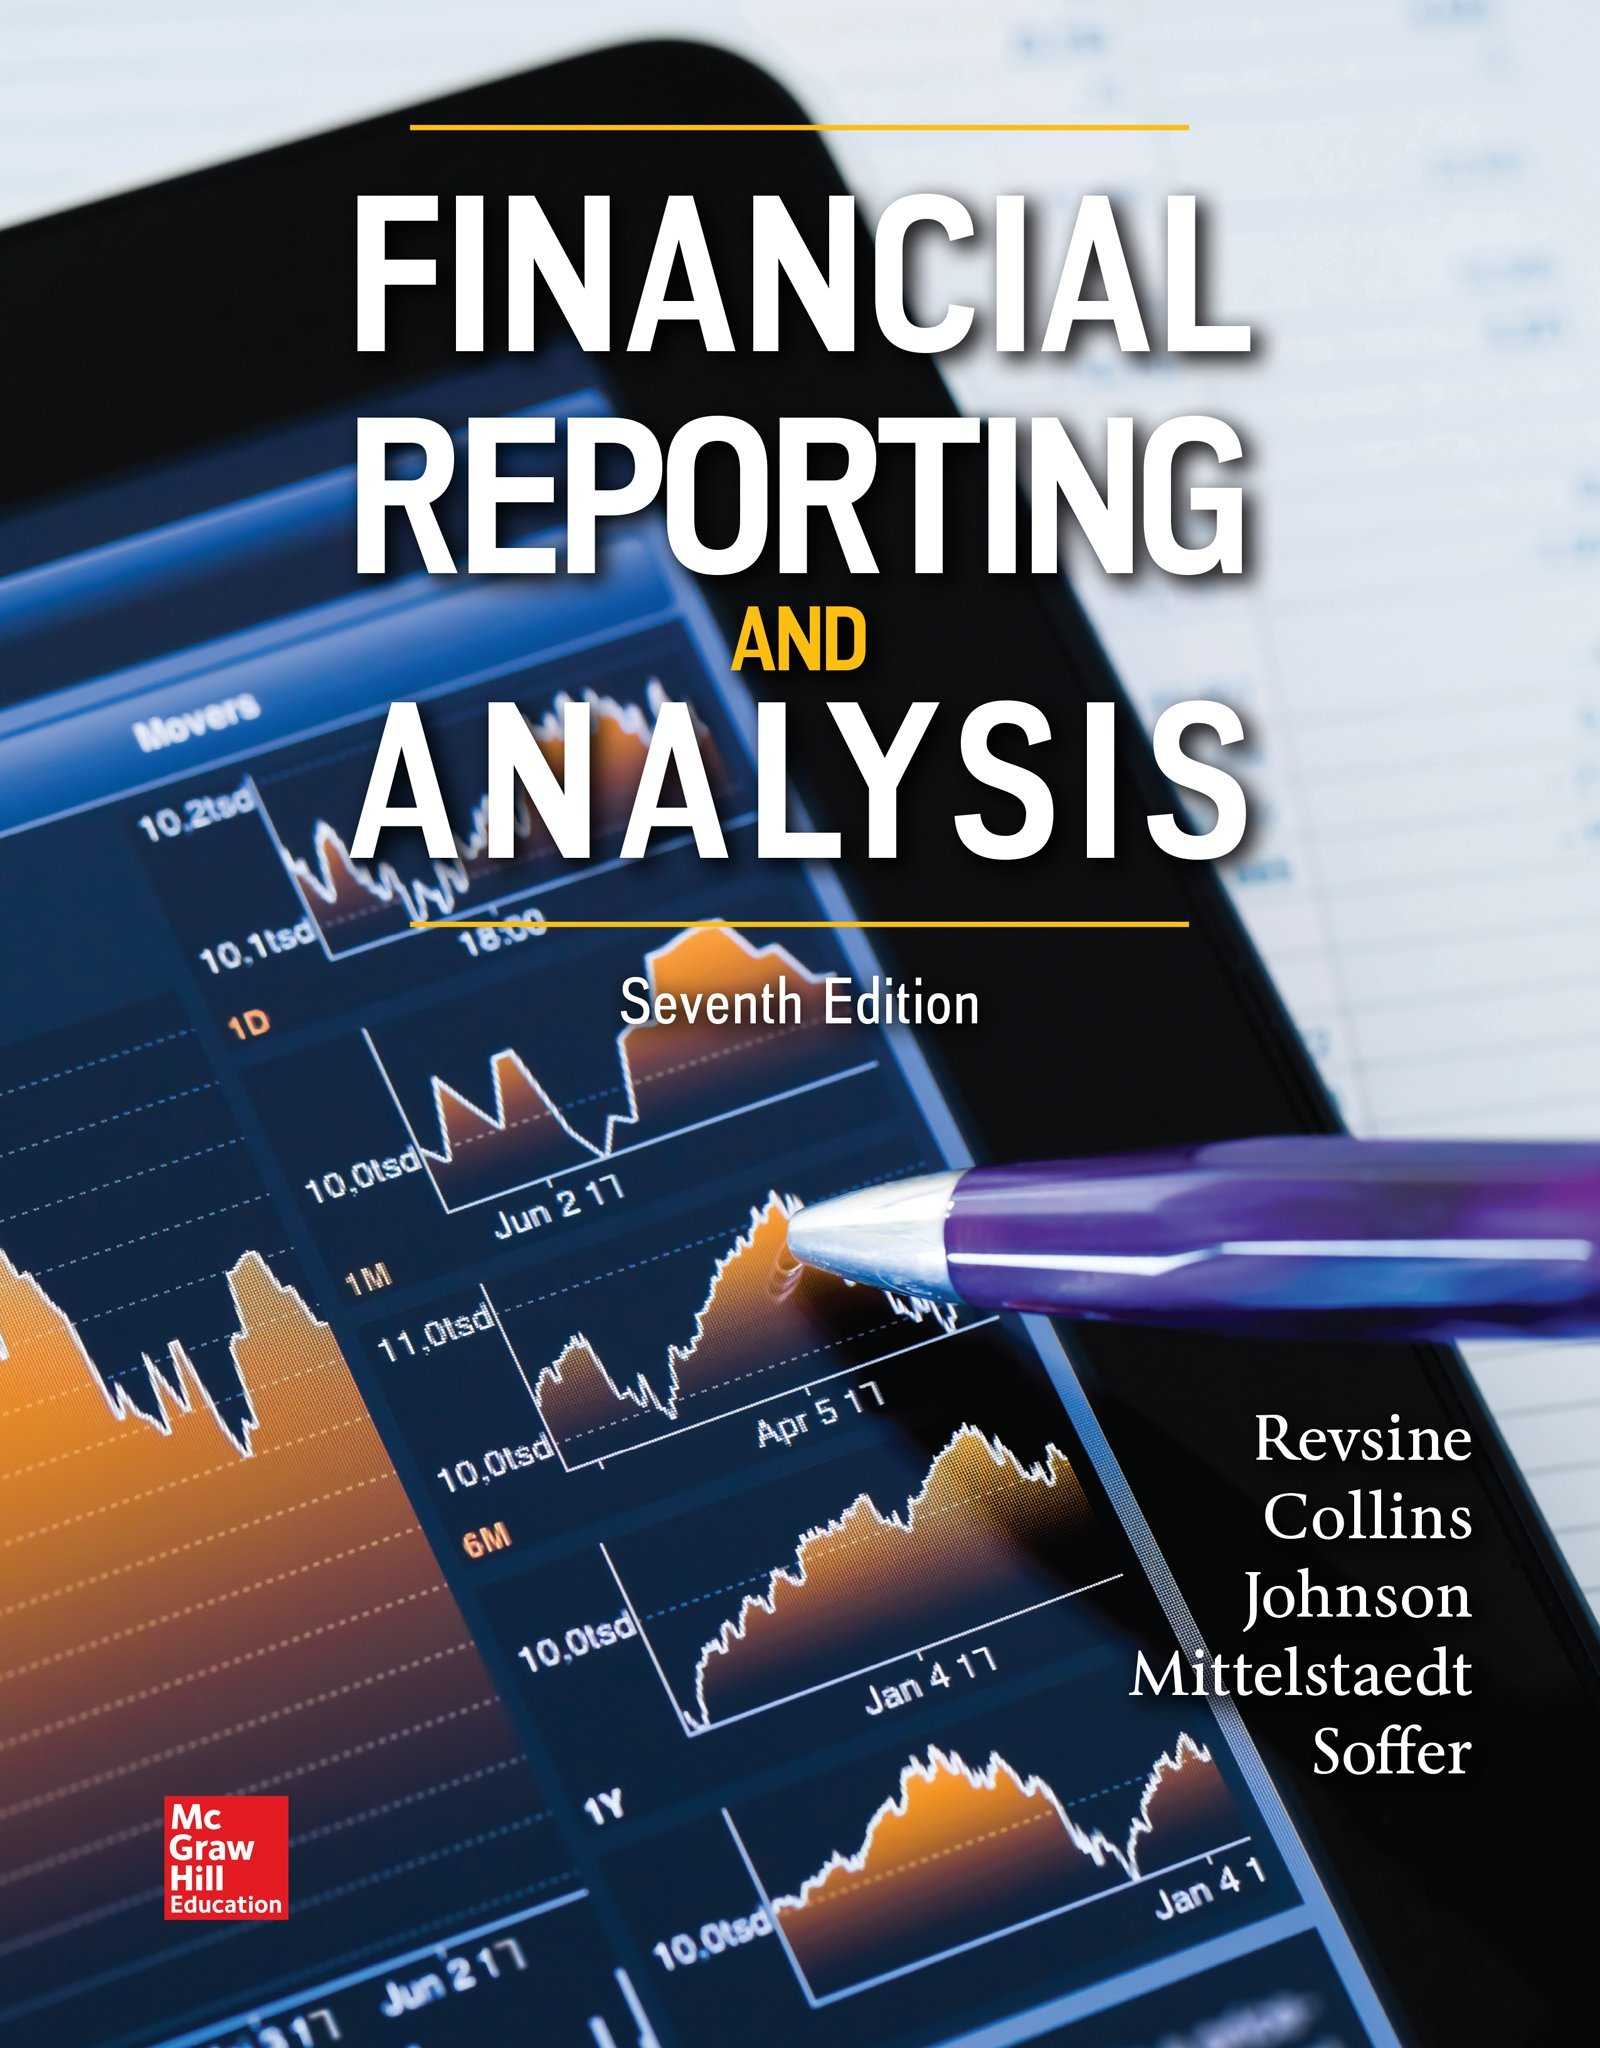 Financial Reporting and Analysis by McGraw-Hill Education